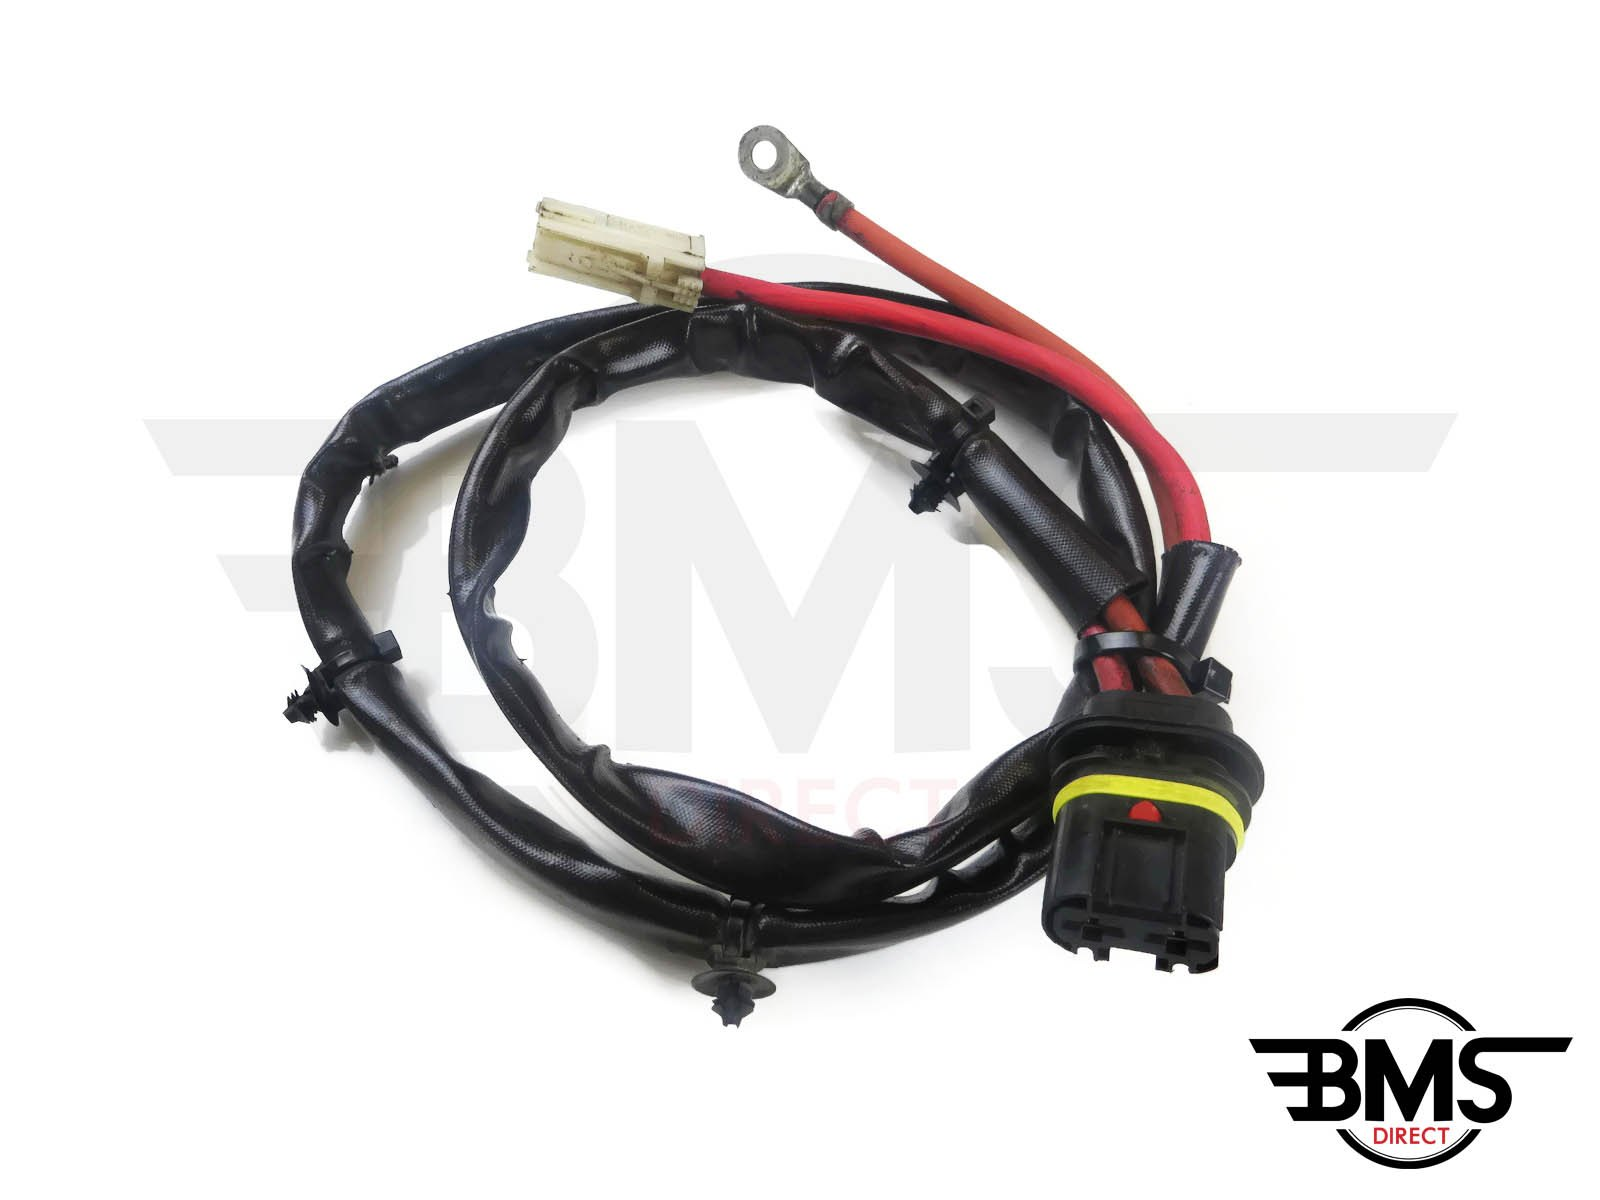 mini cooper transmission wiring harness wiring diagram Dodge Journey Wiring Harness mini cooper transmission wiring harness wiring librarymini cooper transmission wiring harness